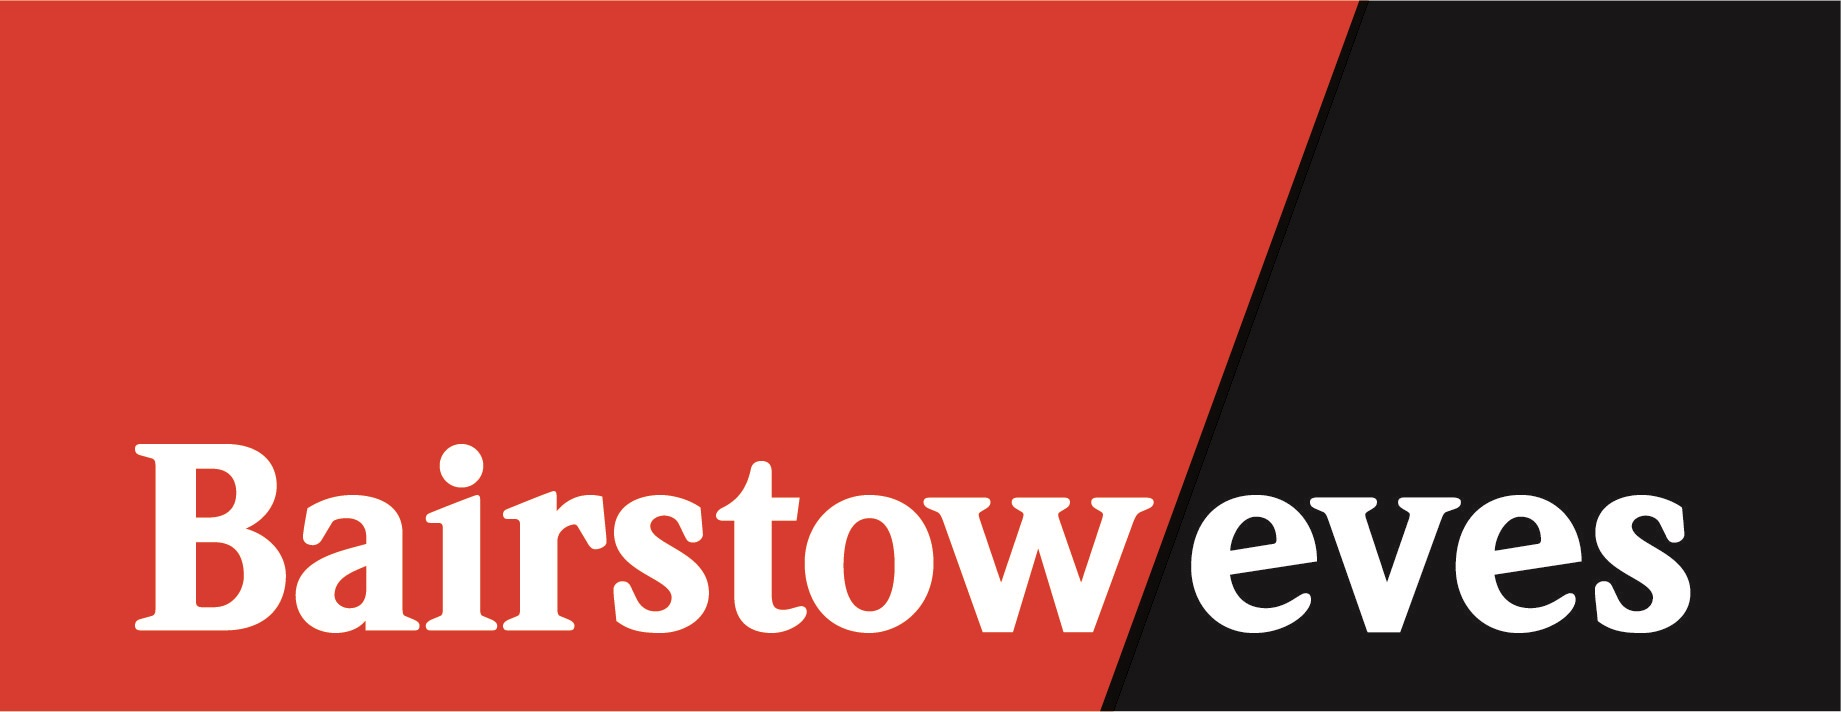 CW - Bairstow Eves - Hornchurch